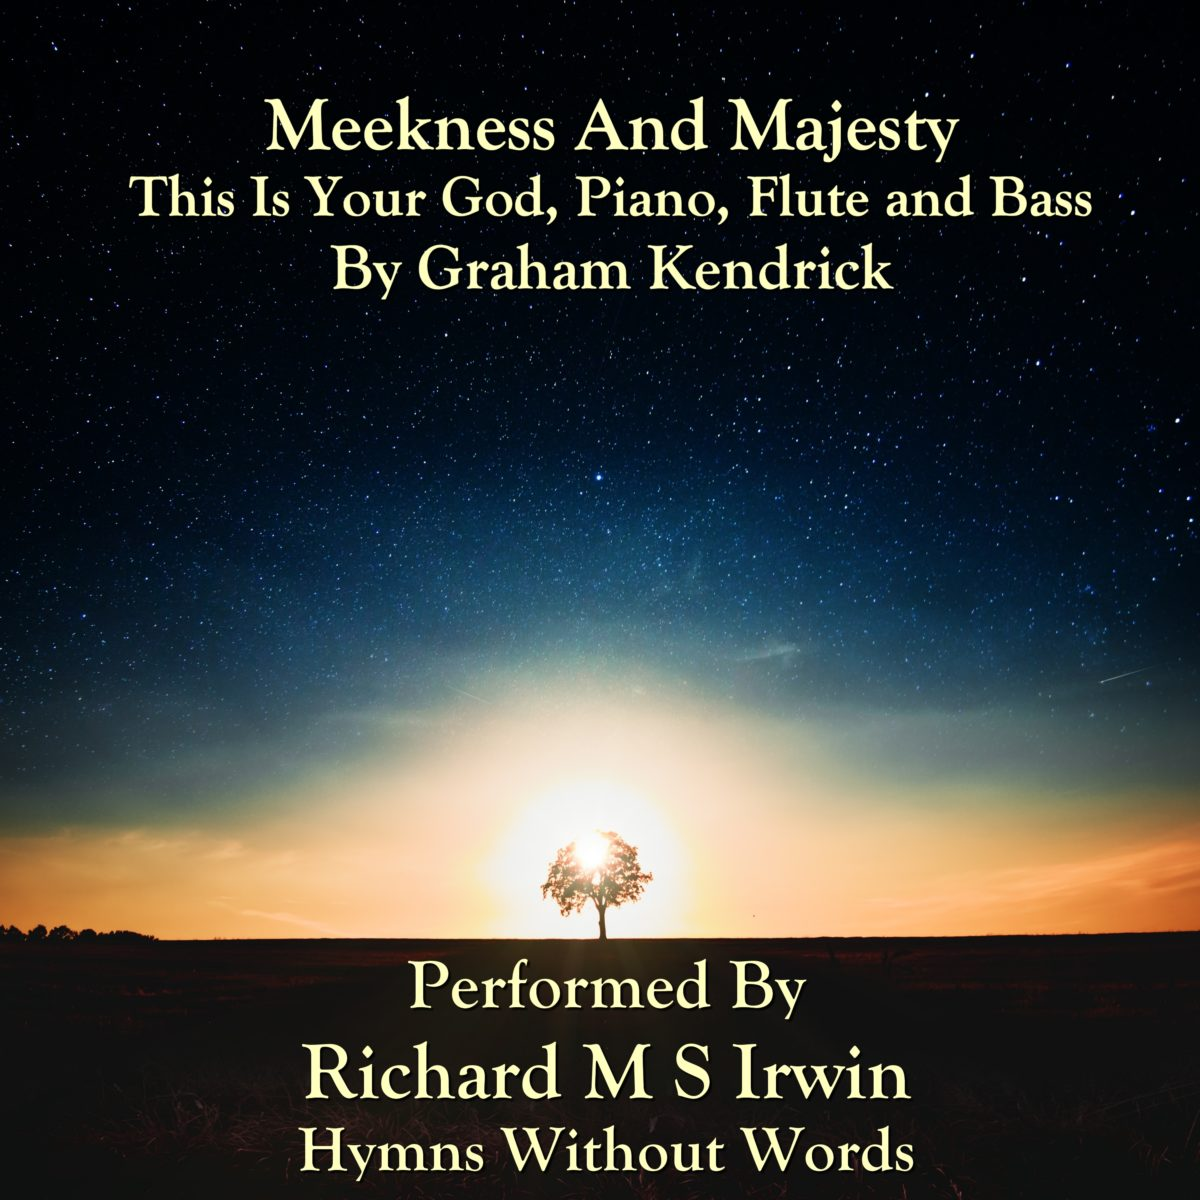 Meekness And Majesty (This Is Your God, Piano Flute & Bass, 3 Verses)